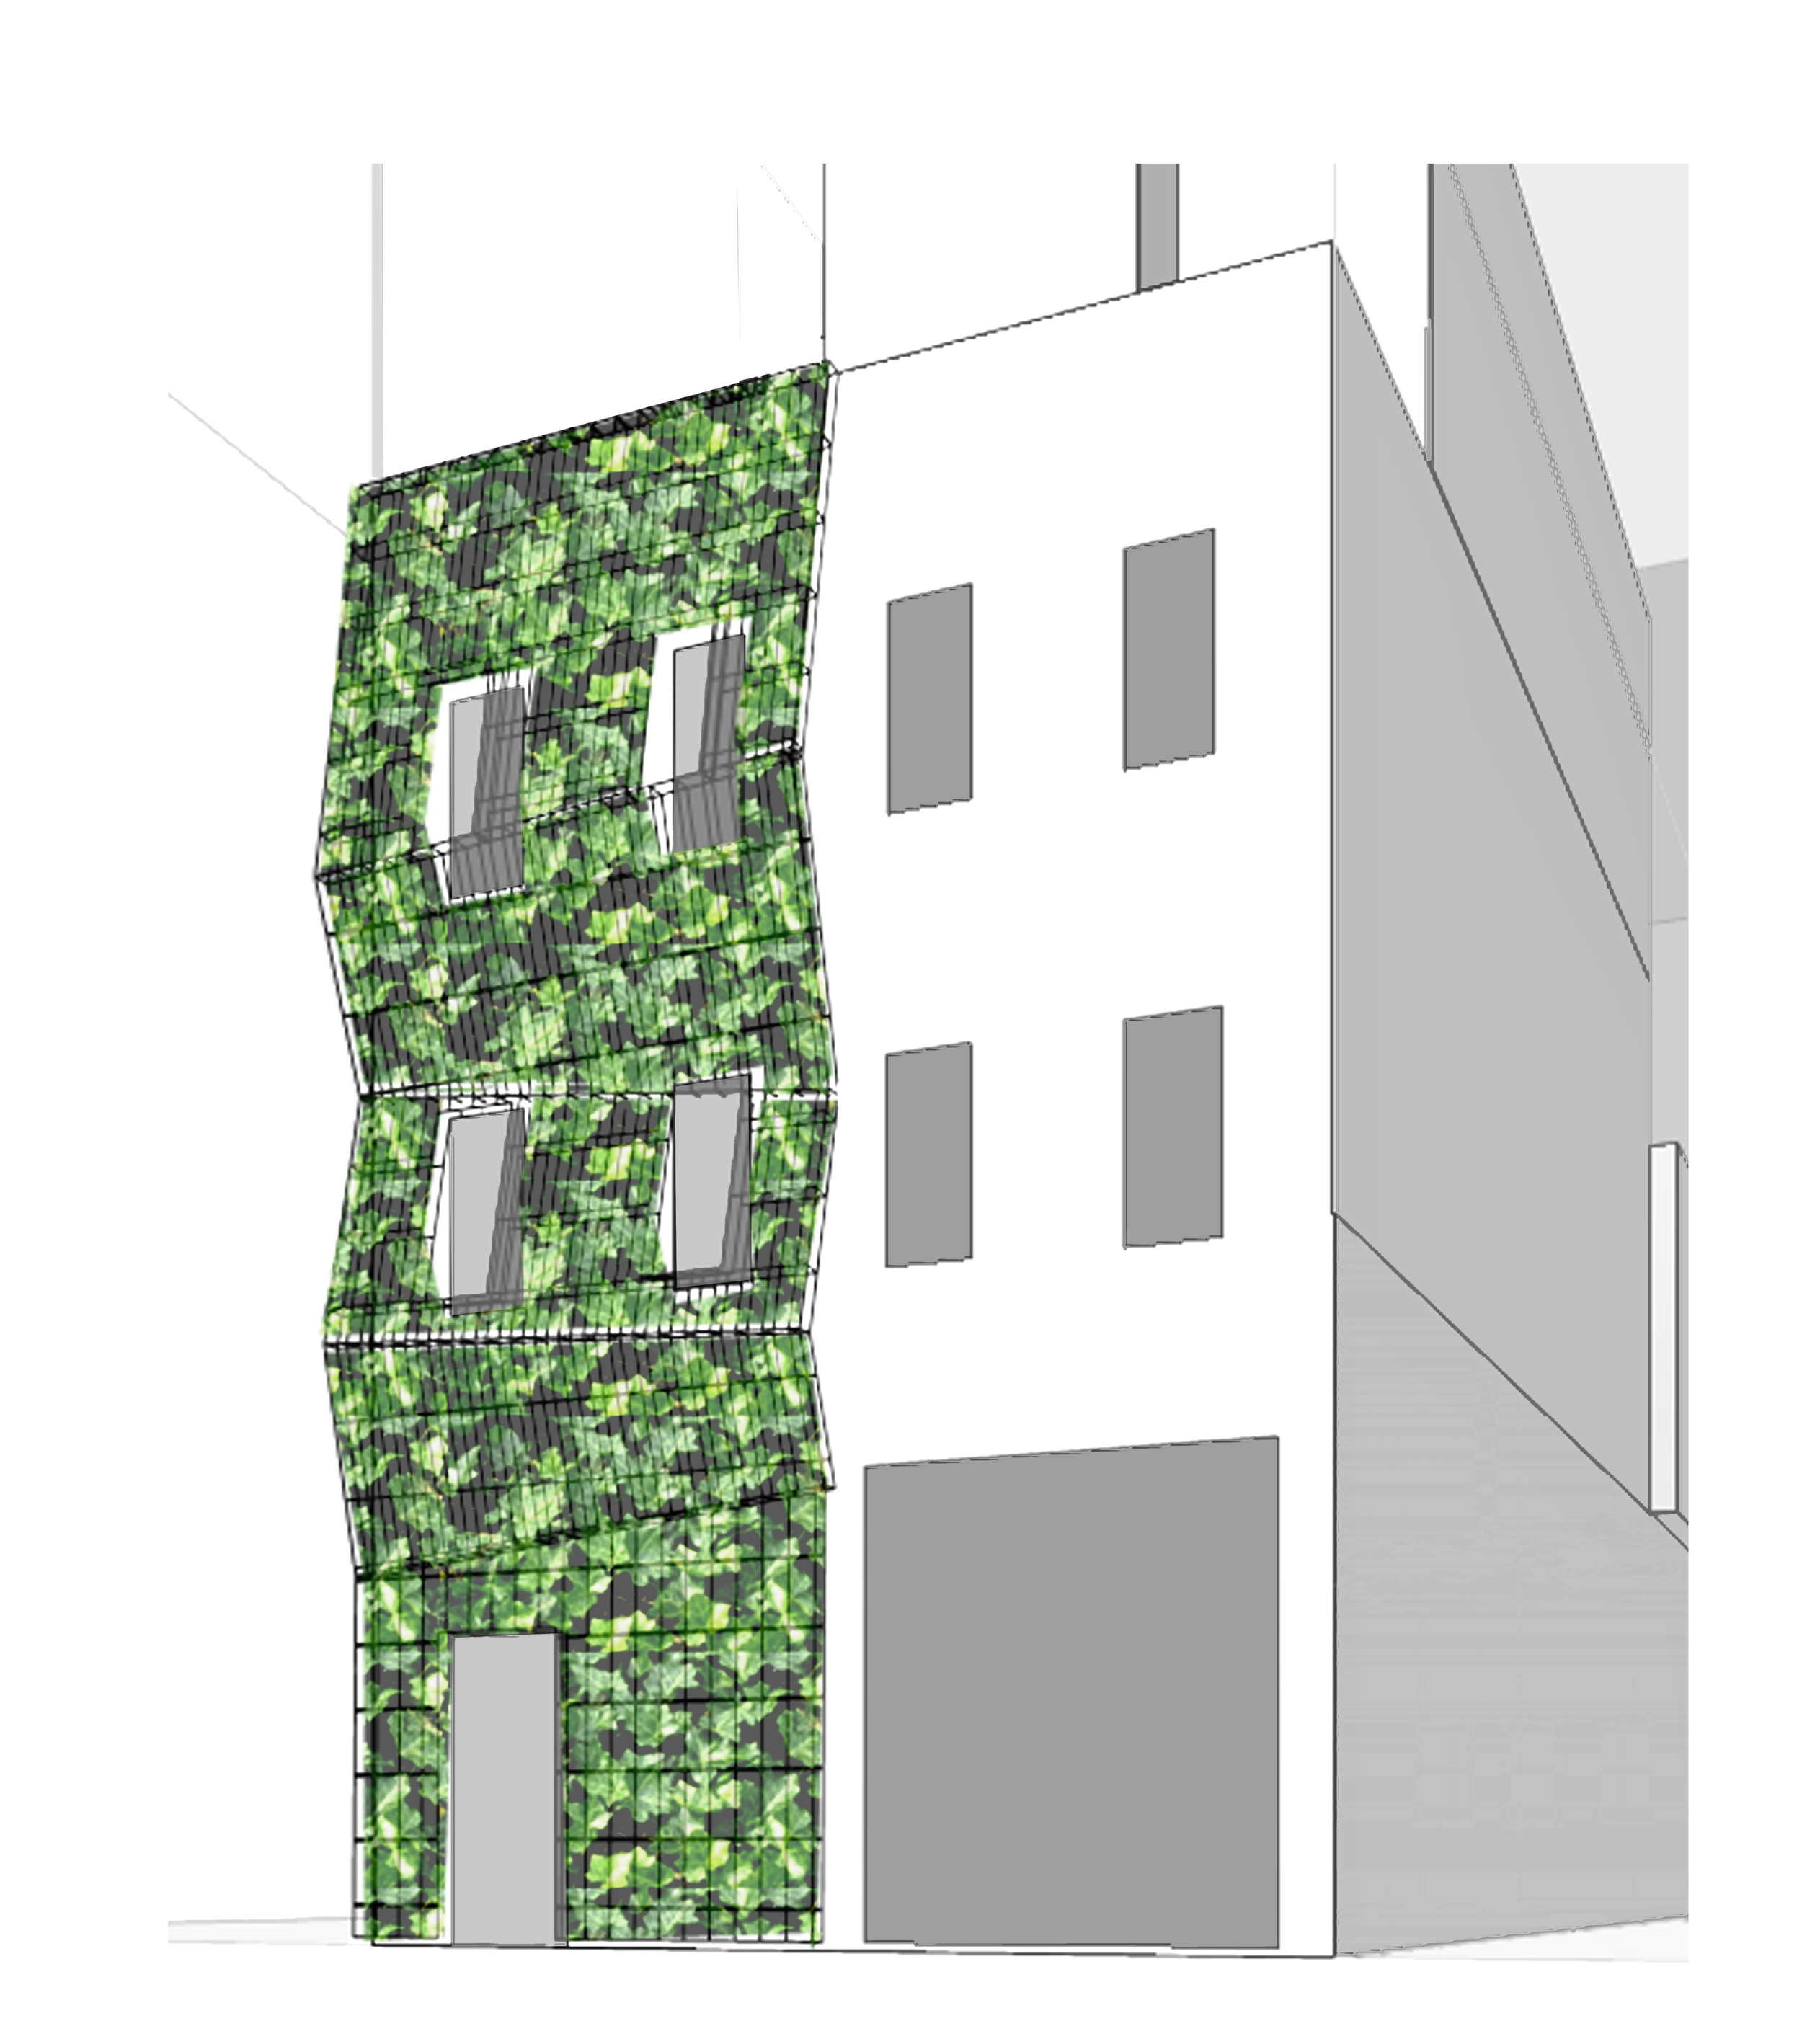 BA_West Village Townhouse_Facade 2.jpg